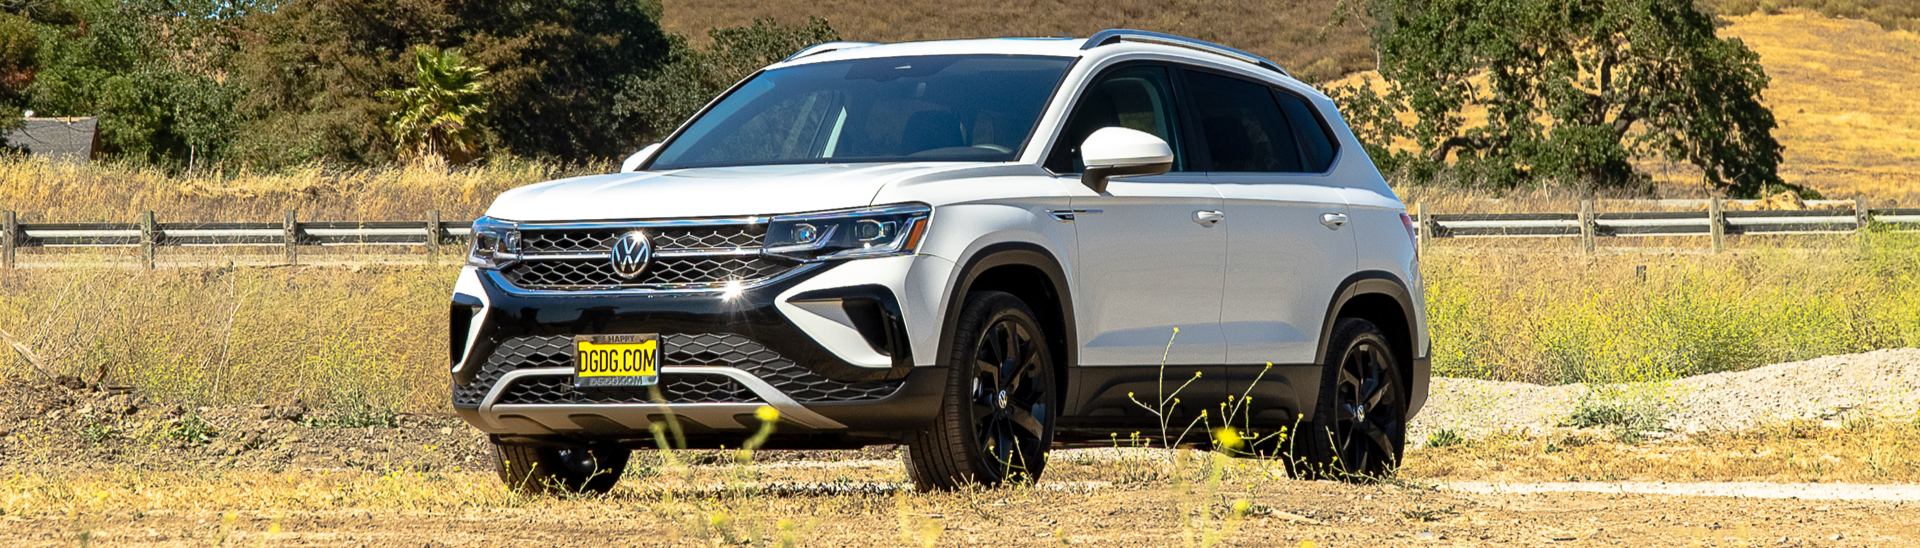 2022 Volkswagen Taos SEL in the color Pure white parked in a grass field.